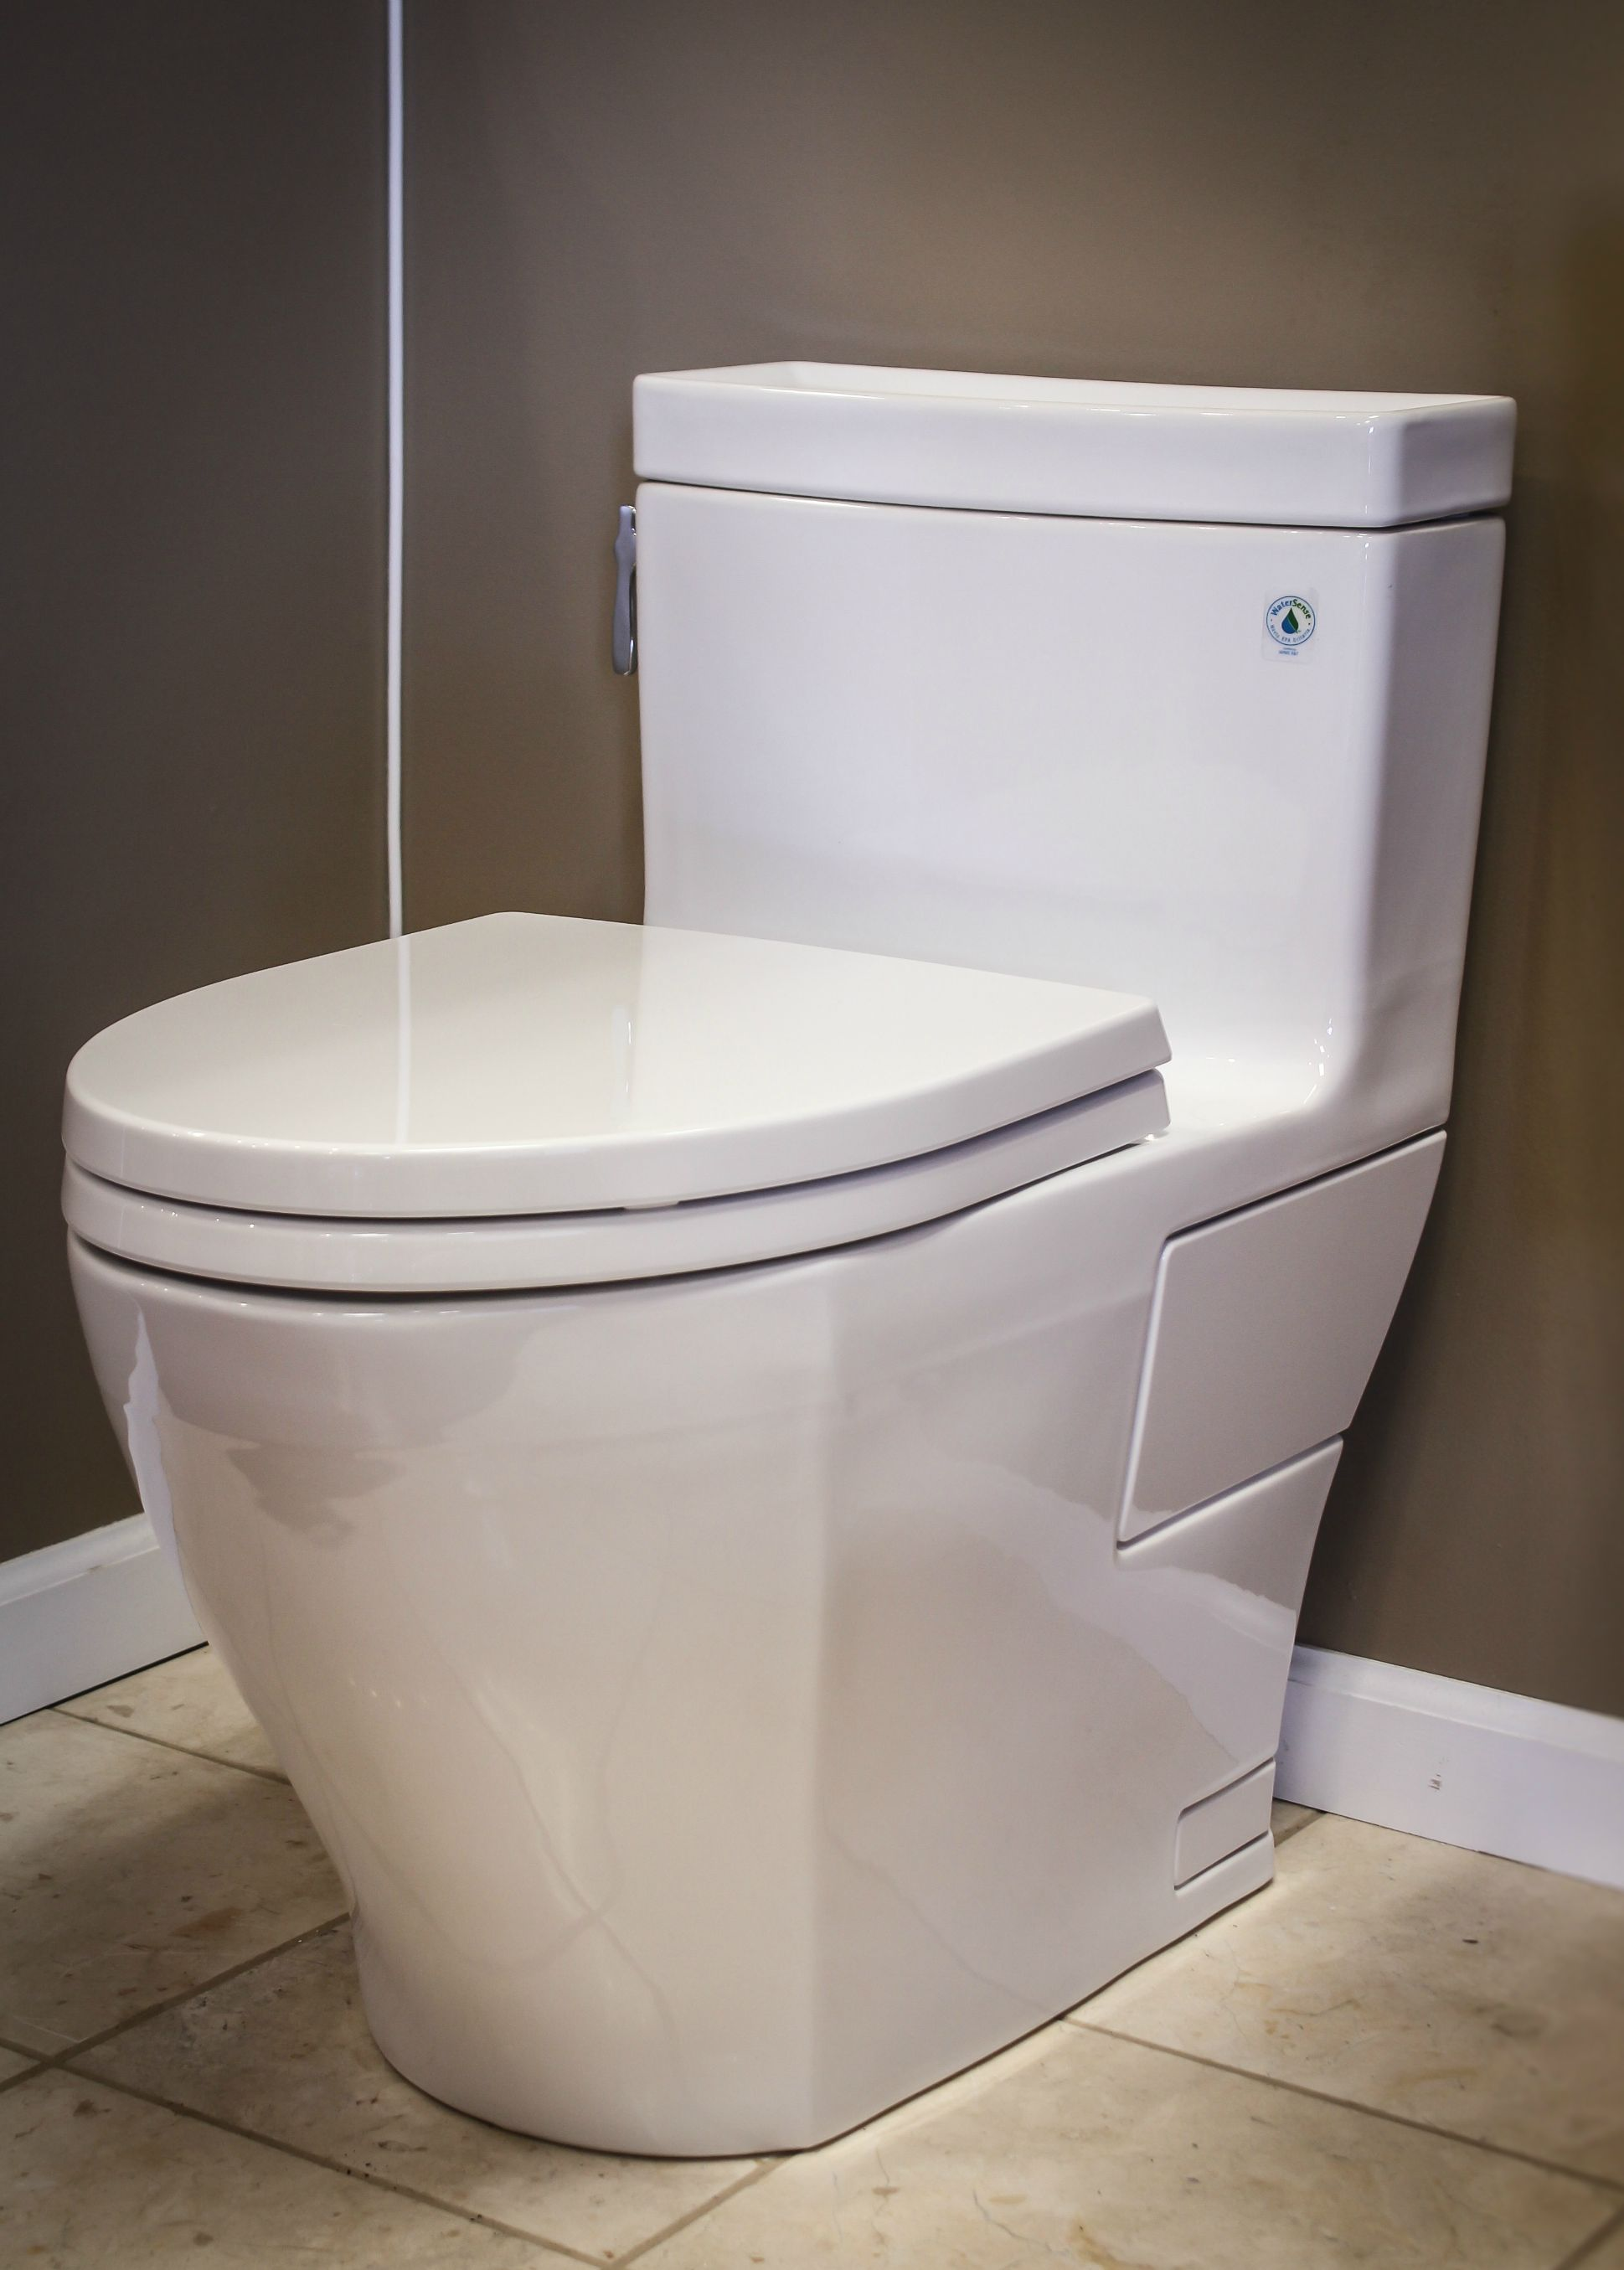 Toto Toilets On Cream Ceramics Floor Matched With Dim Grey Wall And White Baseboard Molding For Toilet Decor Ideas